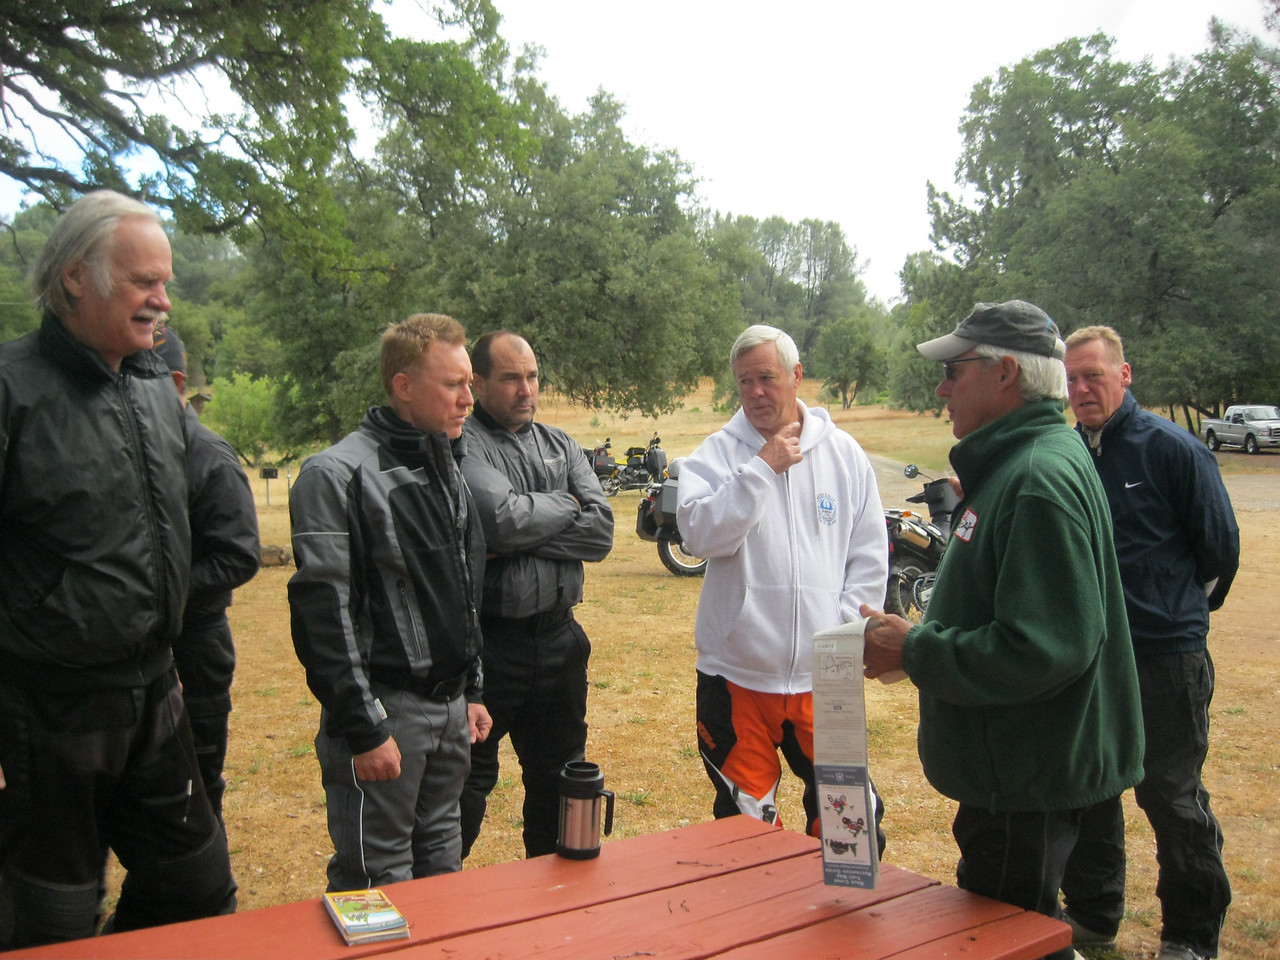 Ron, Darold, Steve, Russ & Roy listen to Tuco's GS ride briefing.